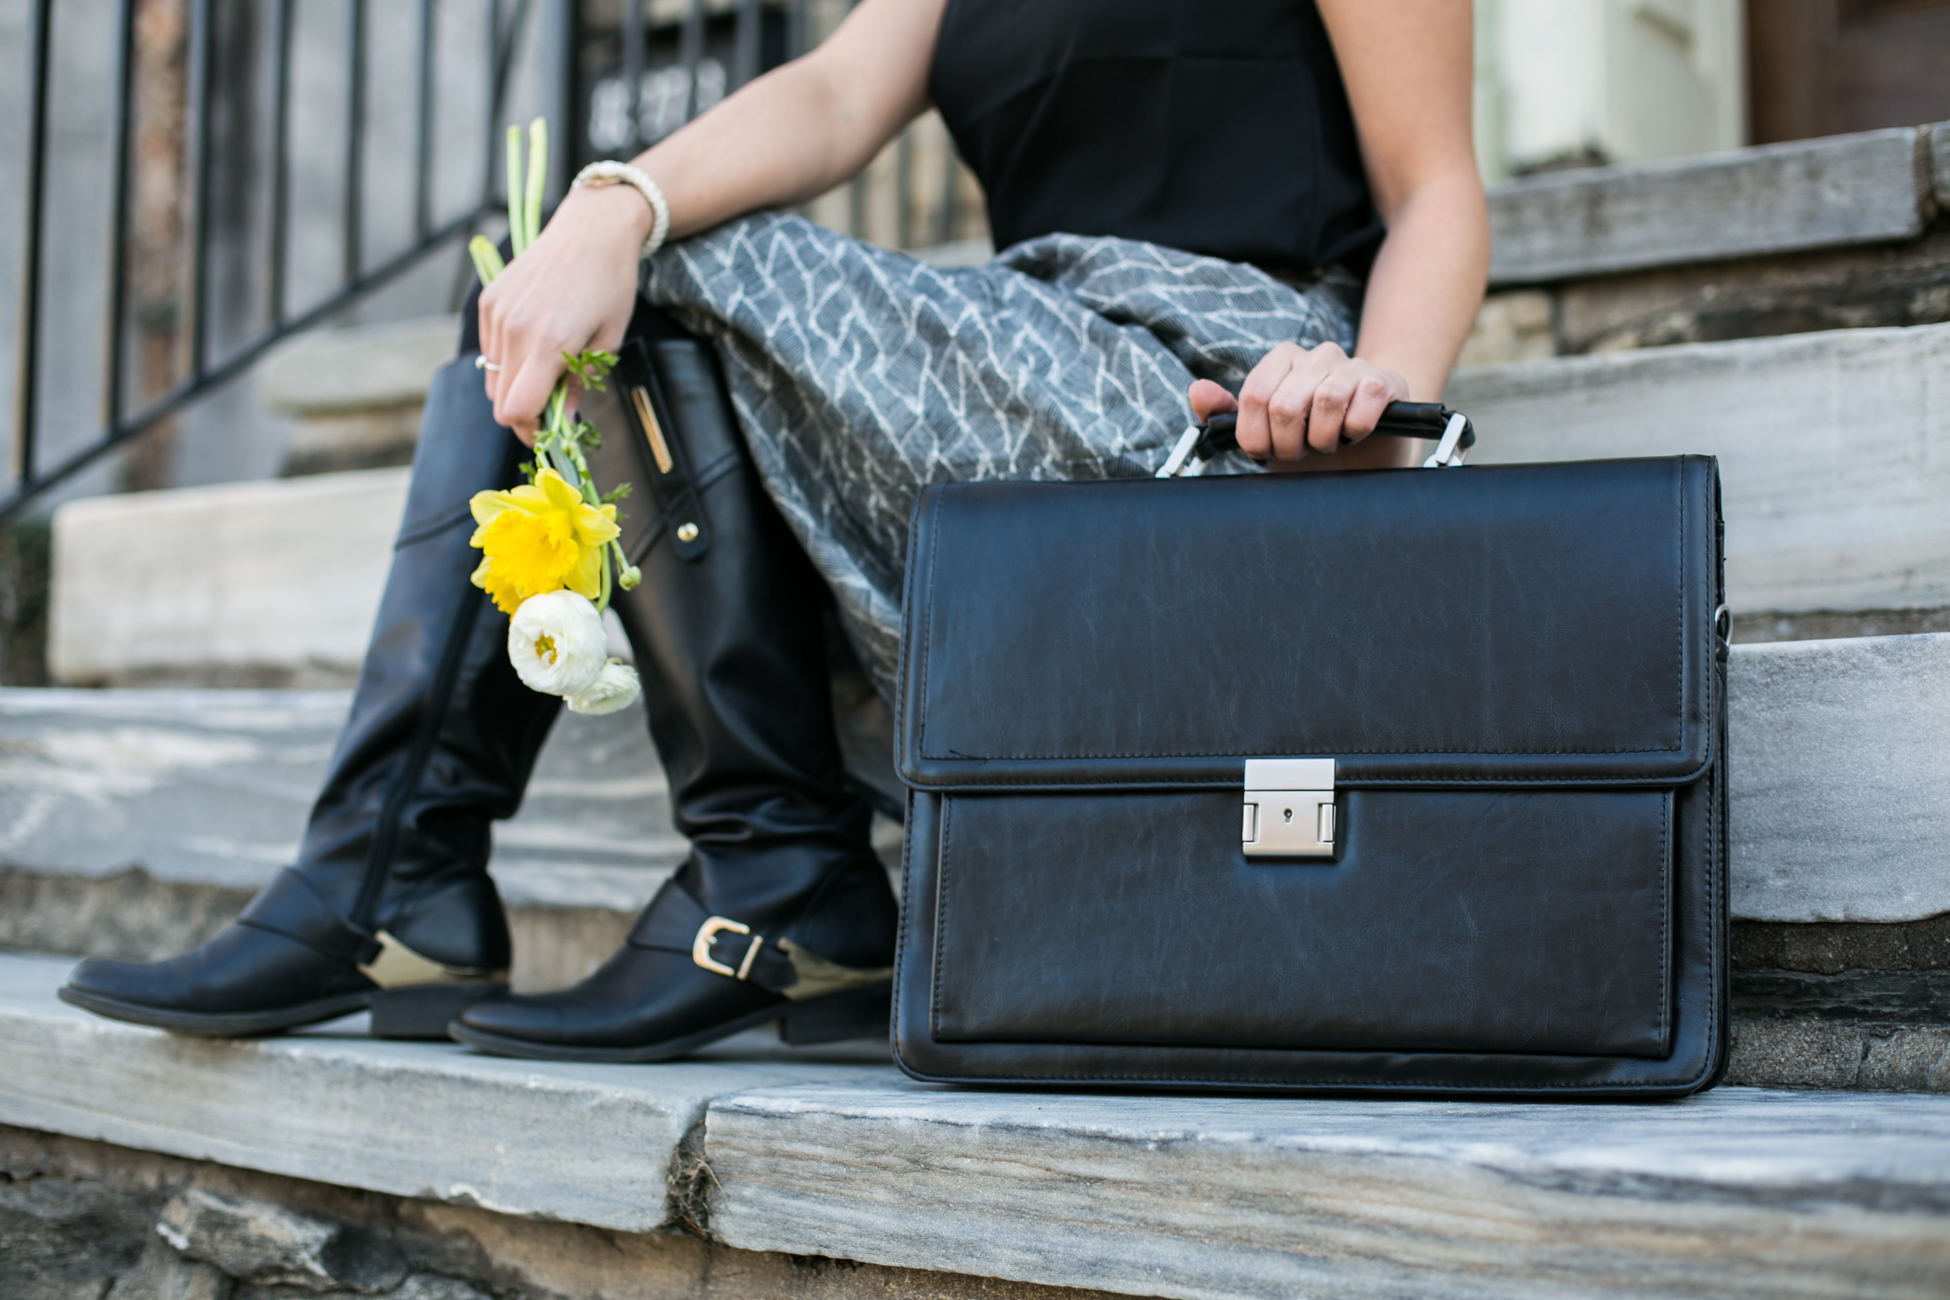 VeganWear by Avi Fox Photography Vegan Leather Briefcase and Laptop Case-17.jpg